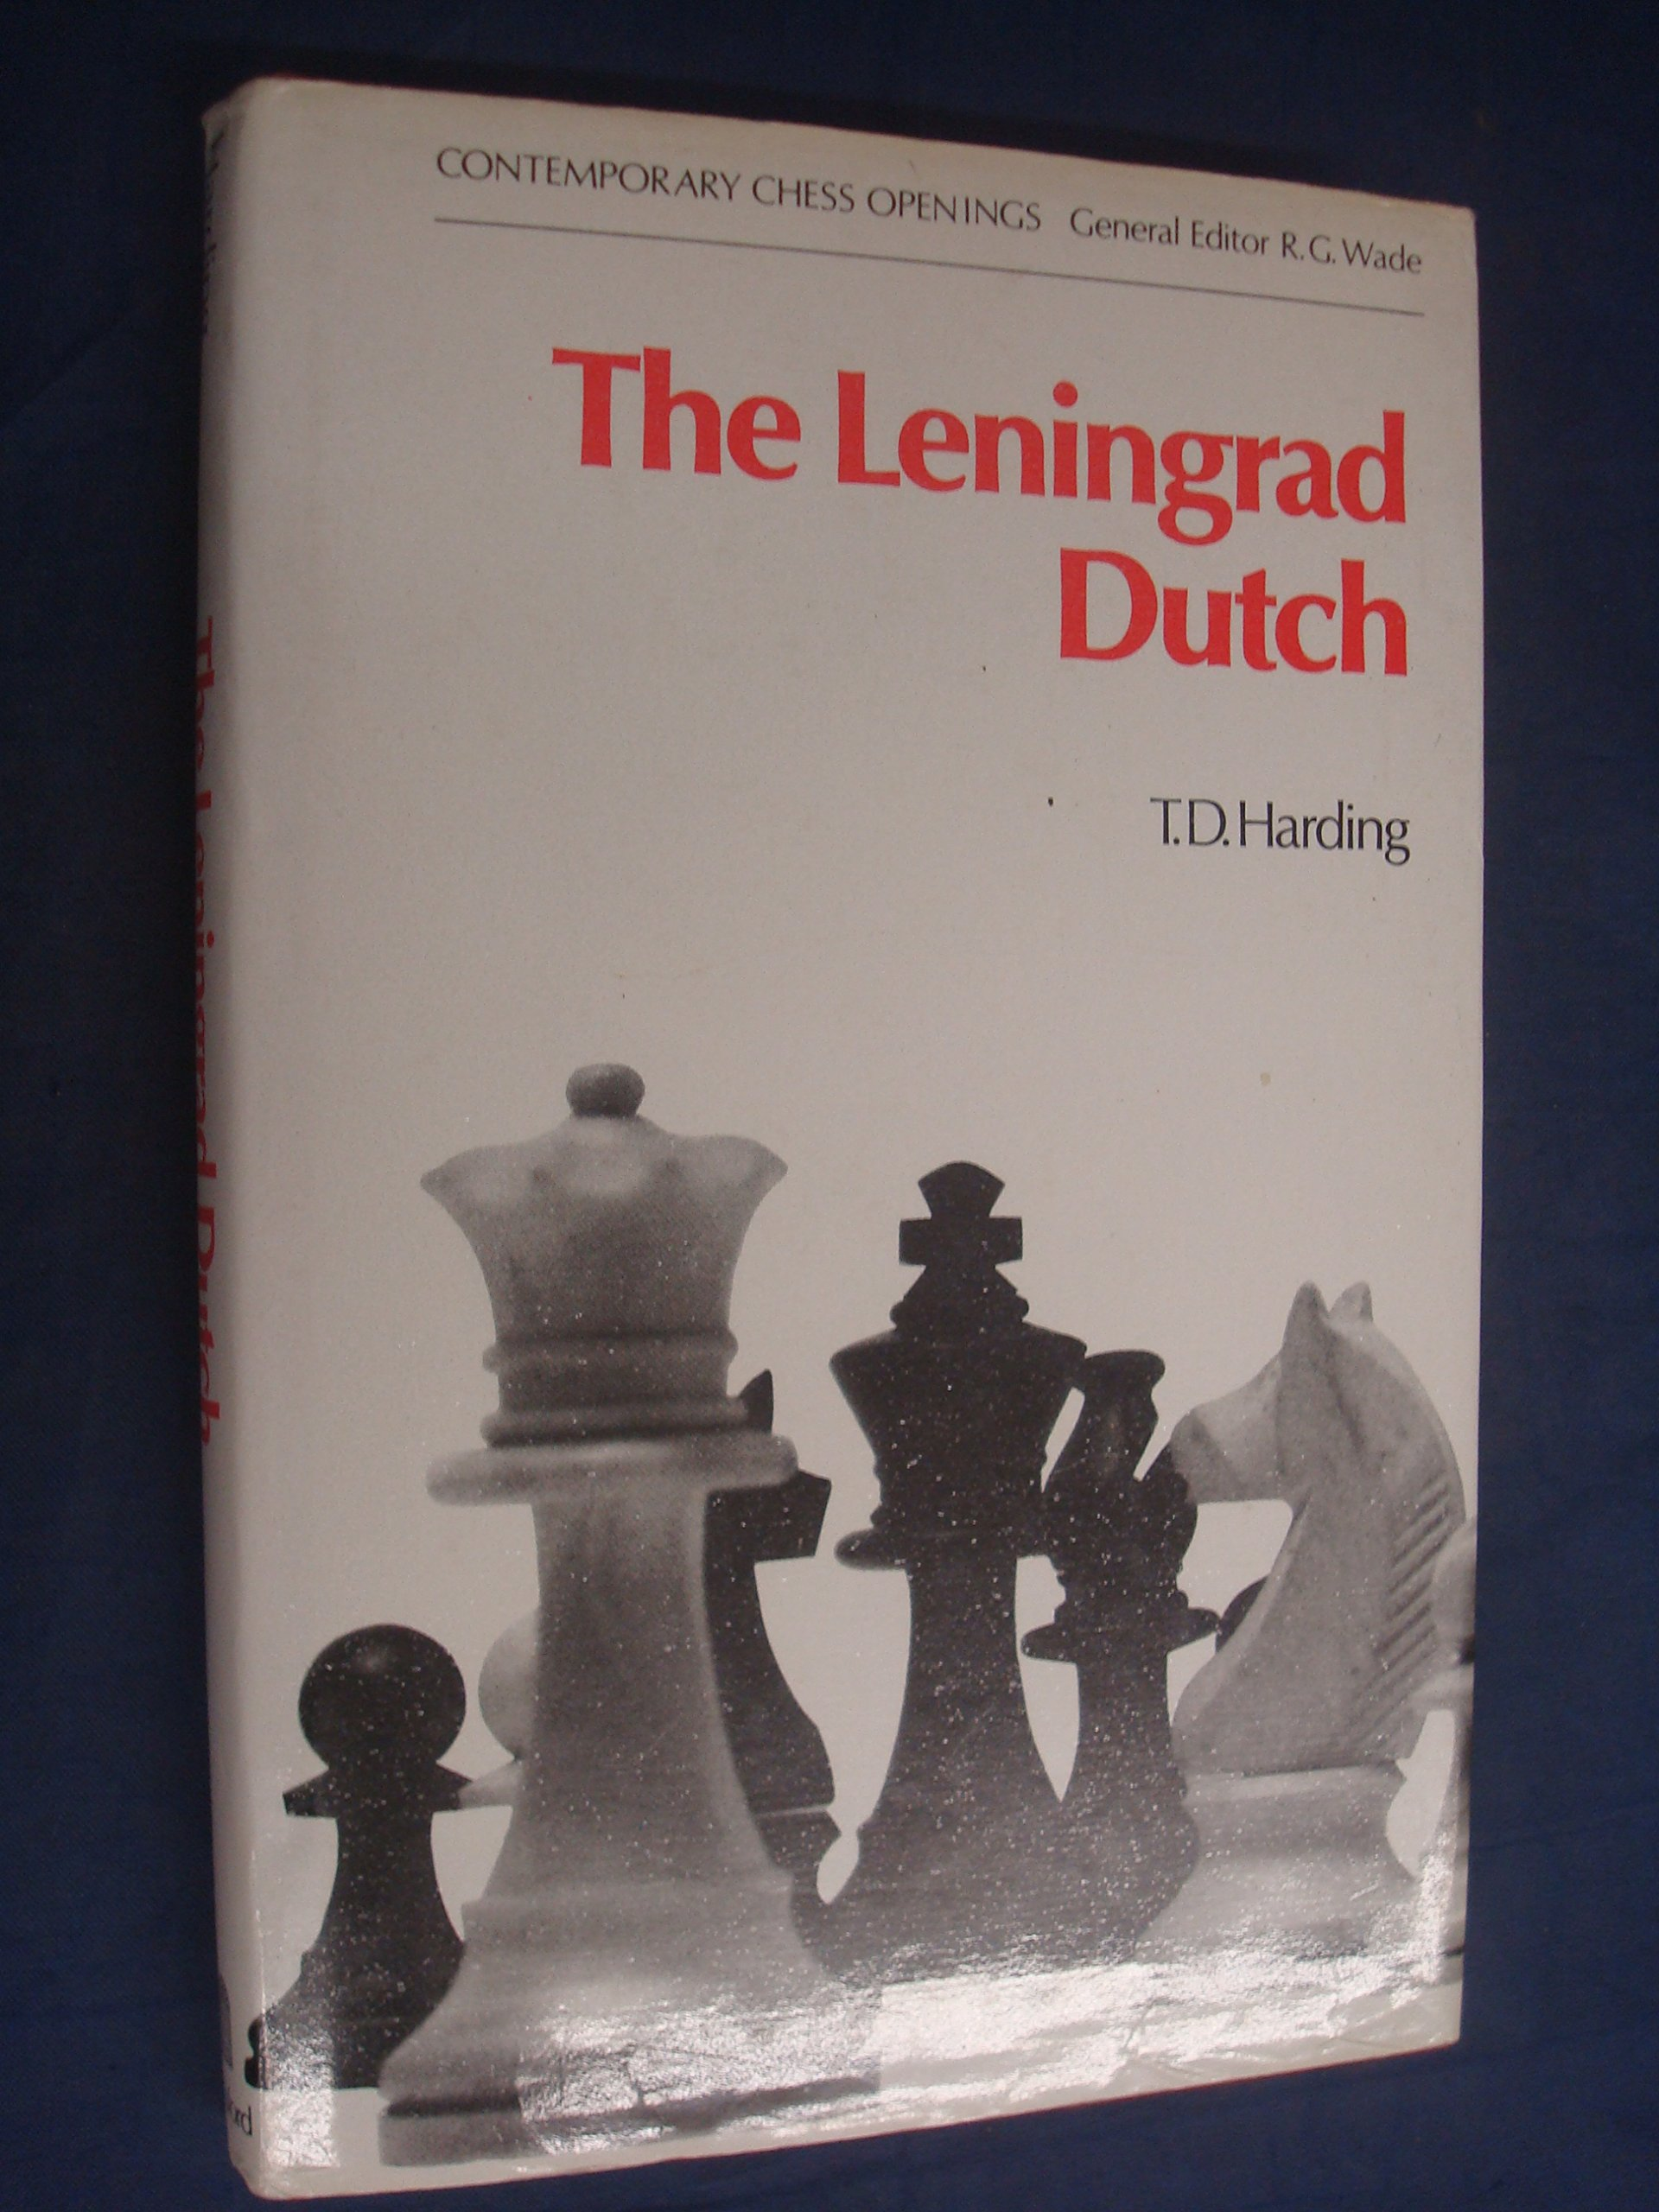 The Leningrad Dutch, BT Batsford, Tim Harding, 1976